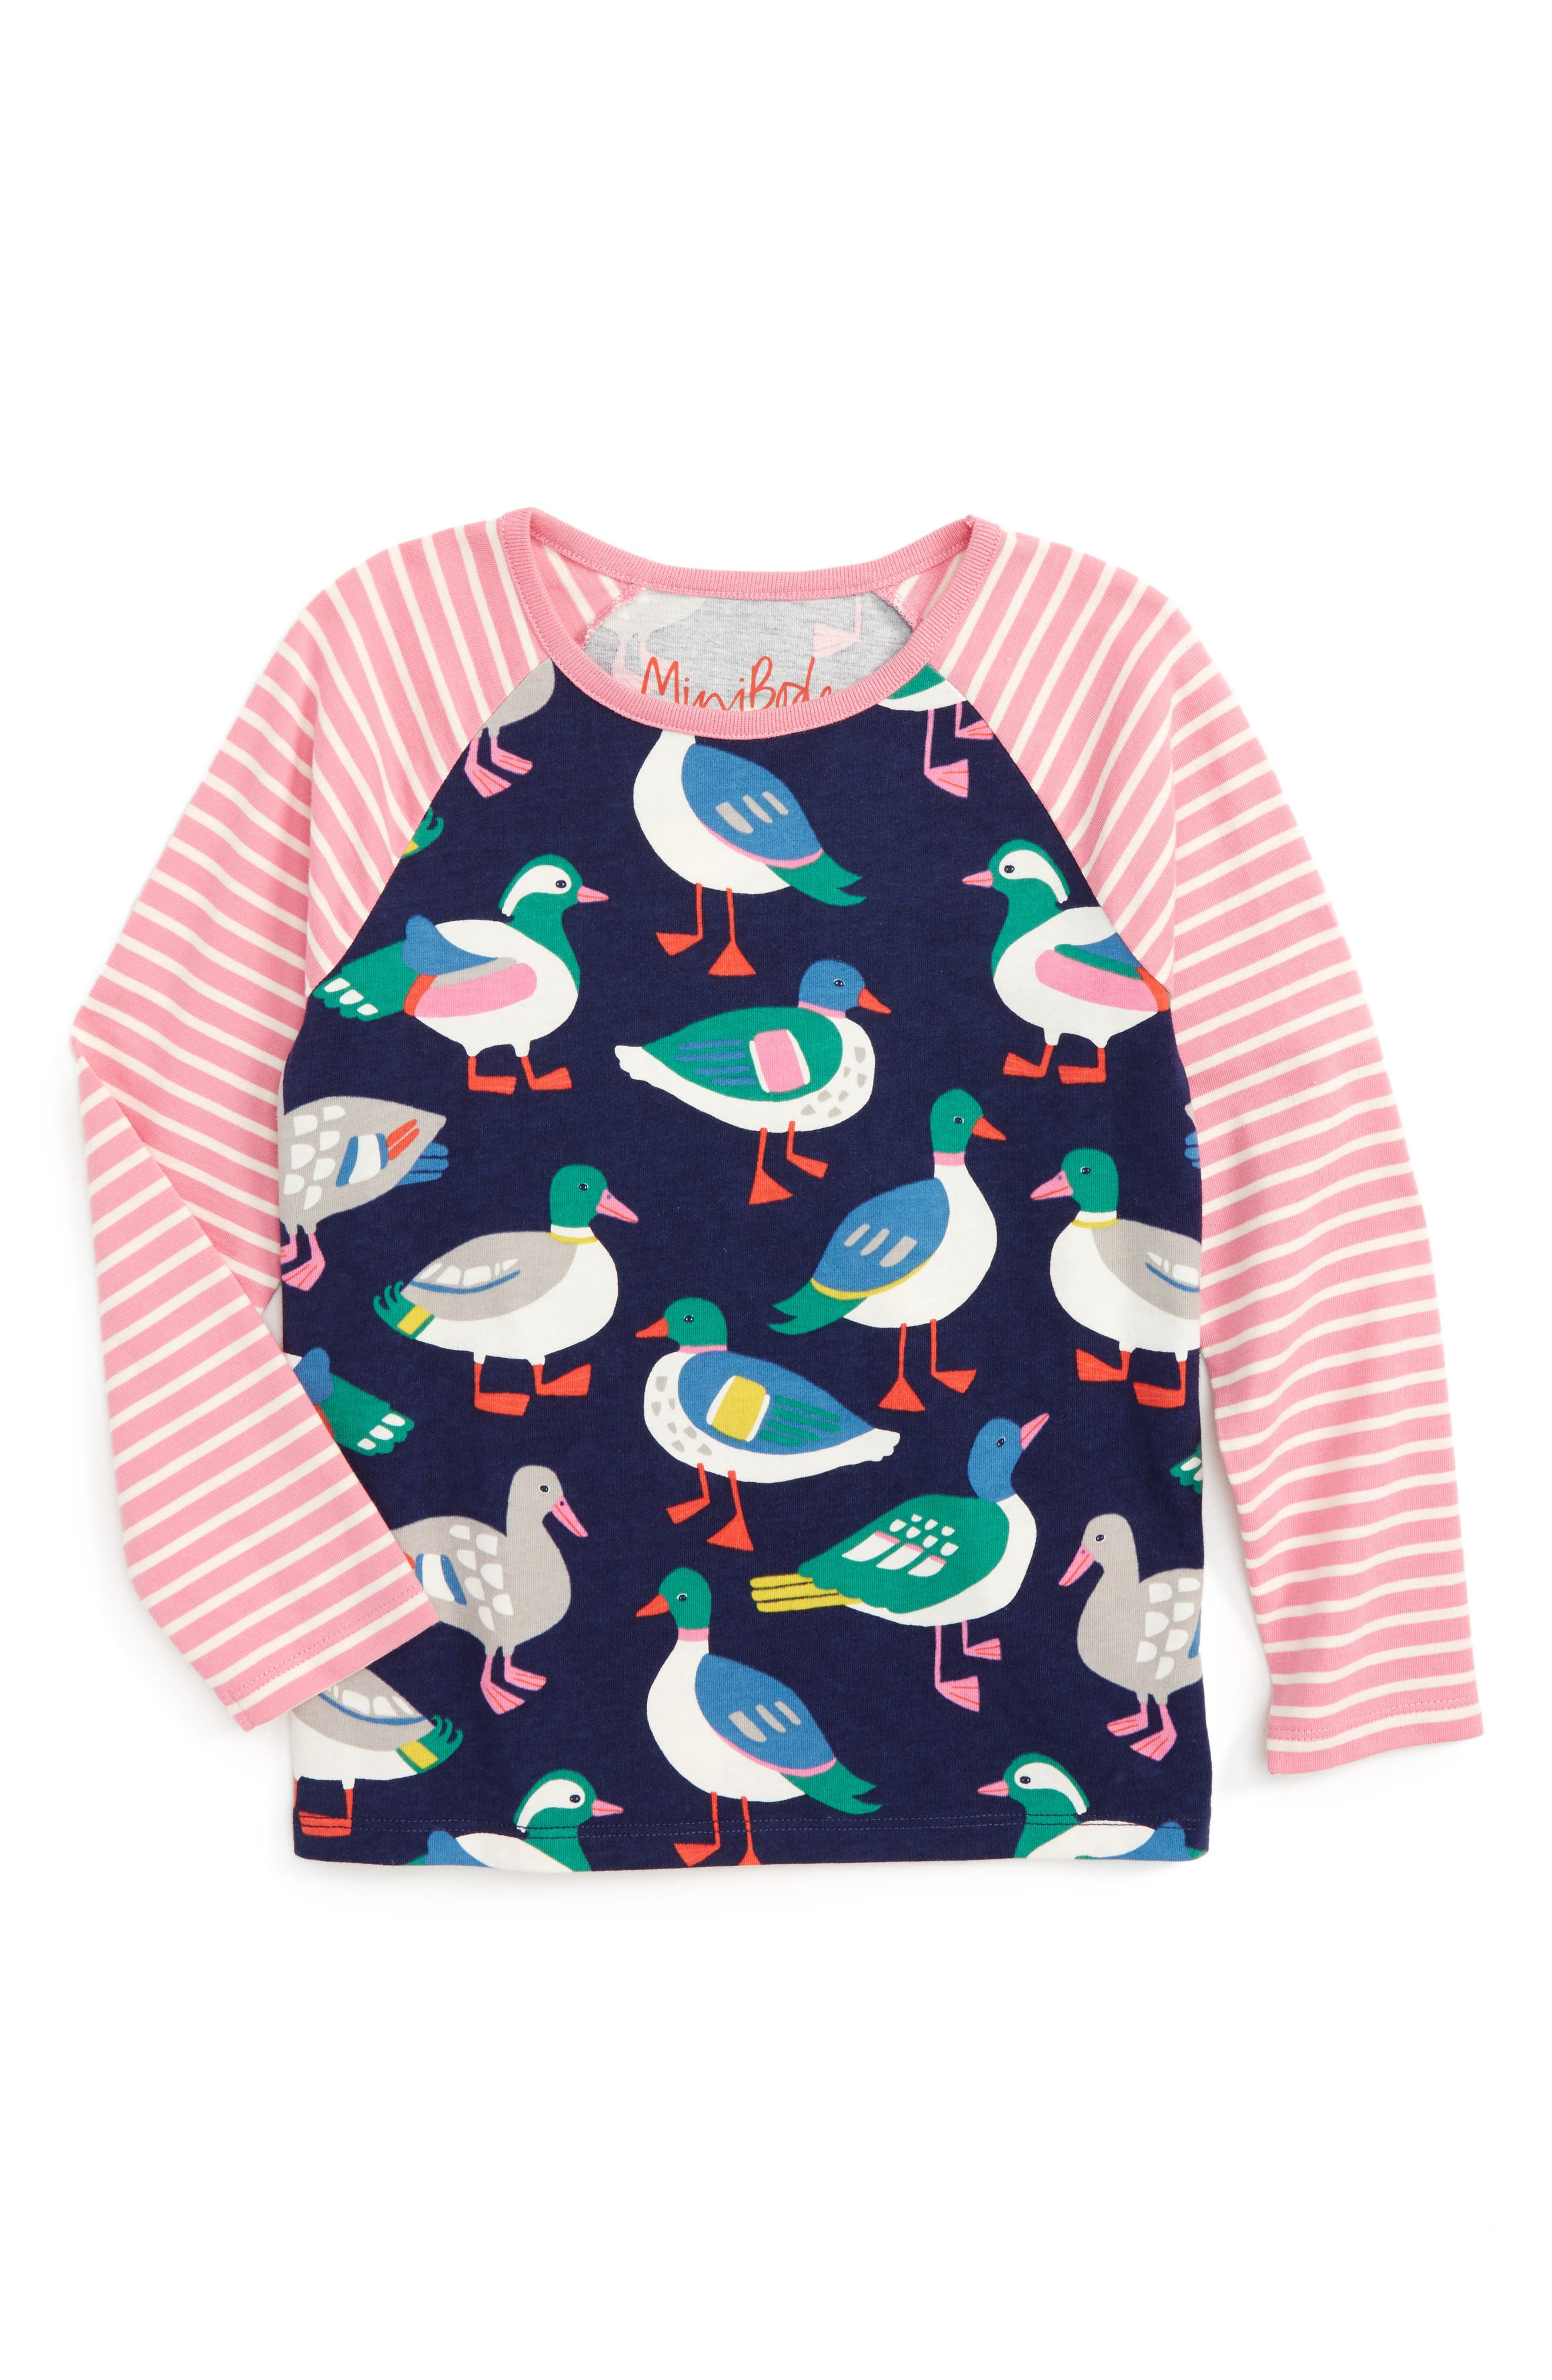 Alternate Image 1 Selected - Mini Boden Hotchpotch Tee (Toddler Girls, Little Girls & Big Girls)